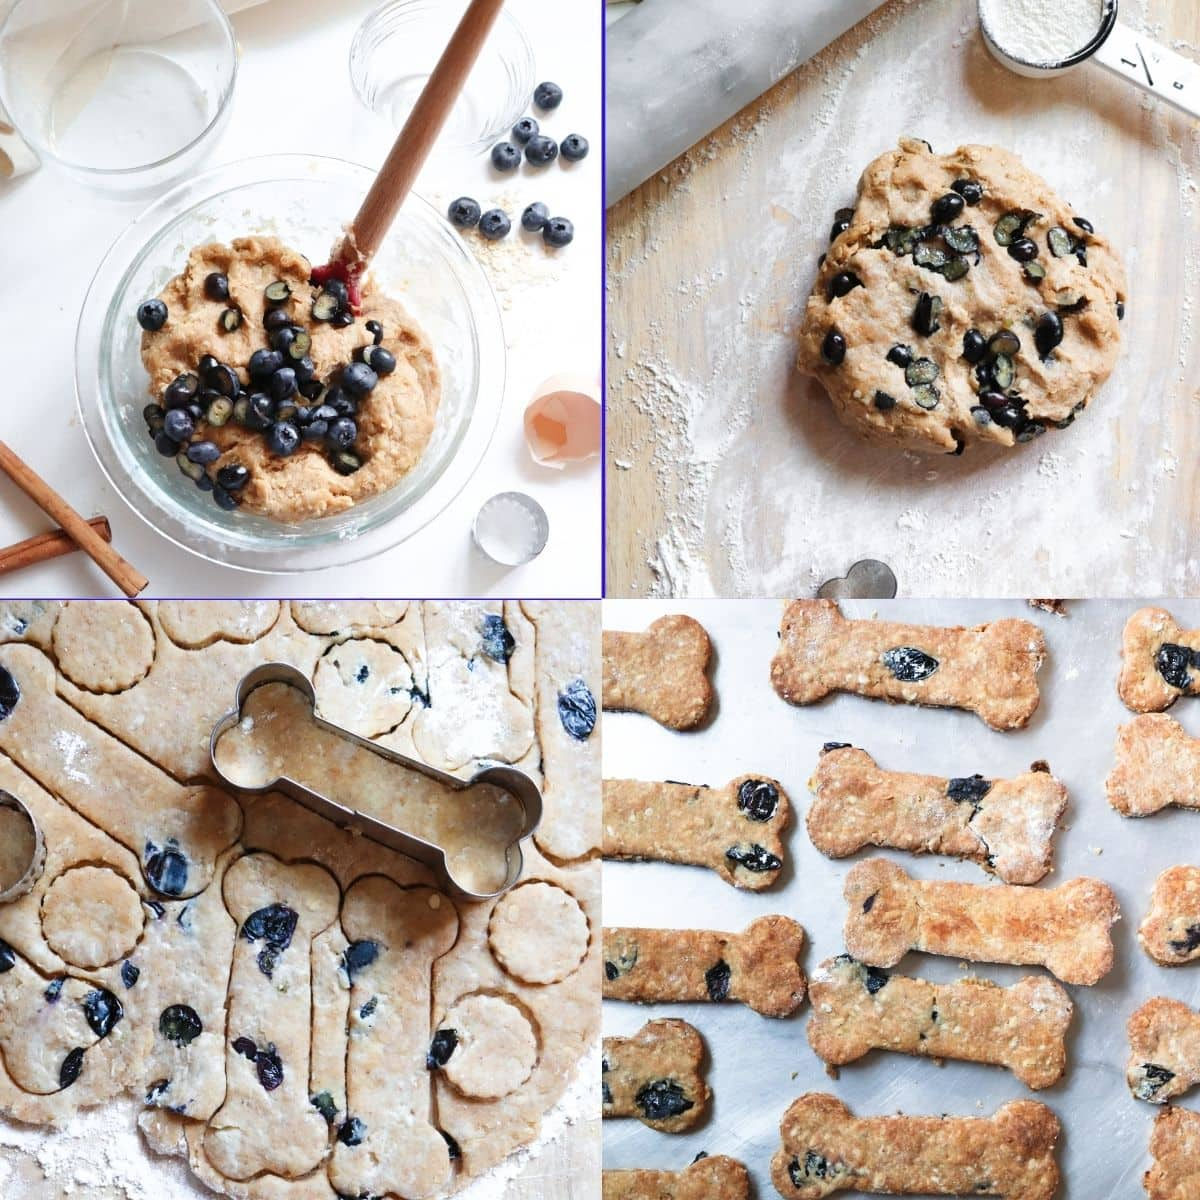 Directions: Peanut Butter Blueberry Dog Treats